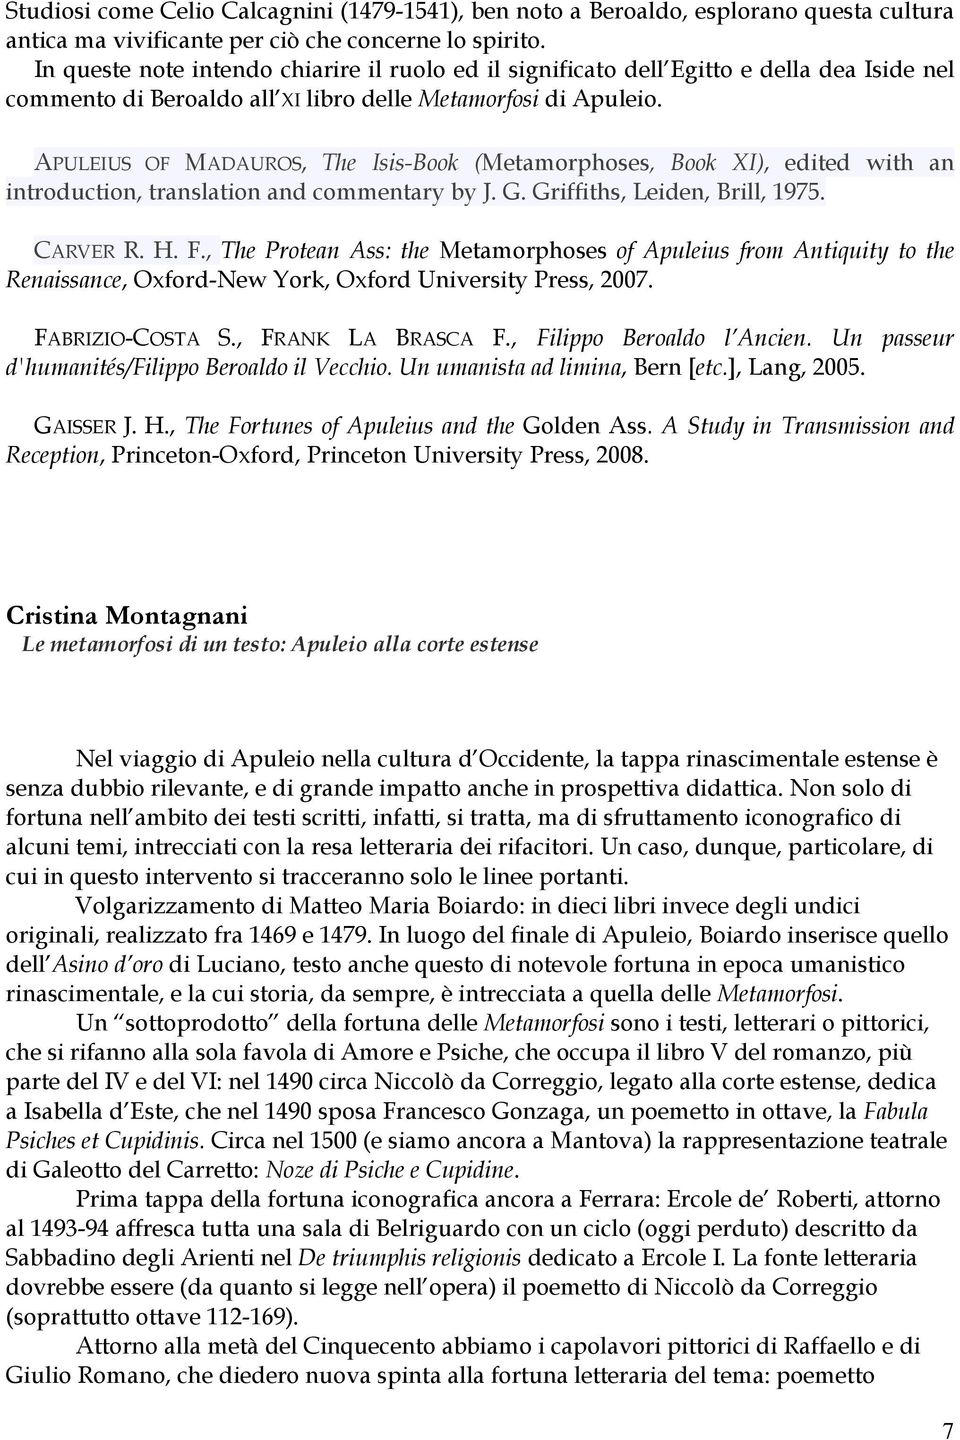 APULEIUS OF MADAUROS, The Isis-Book (Metamorphoses, Book XI), edited with an introduction, translation and commentary by J. G. Griffiths, Leiden, Brill, 1975. CARVER R. H. F.